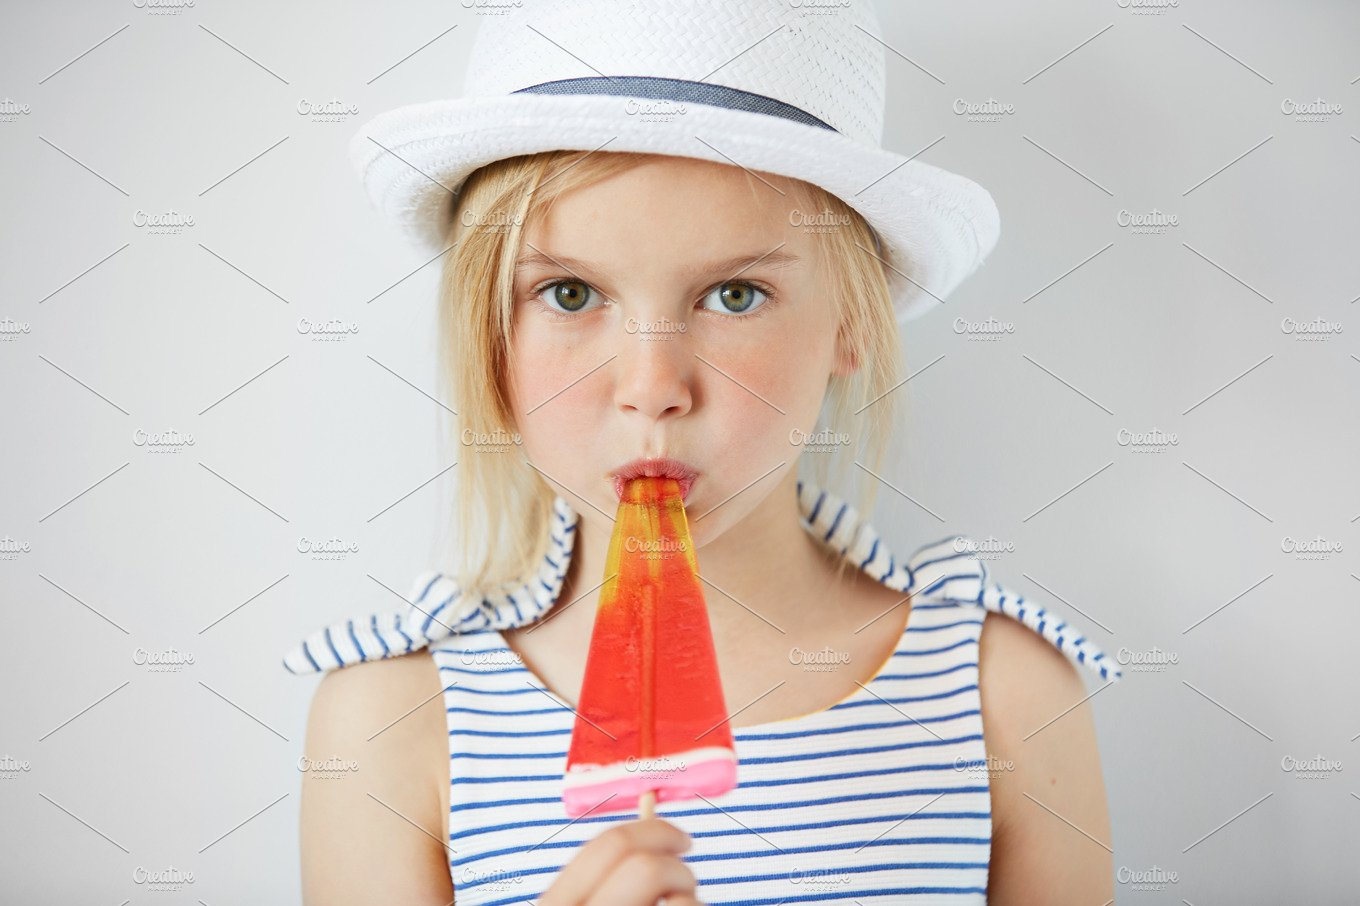 Isolated Shot Of Cute Little Girl With Green Eyes And Blonde Hair Wearing White Hat And Striped